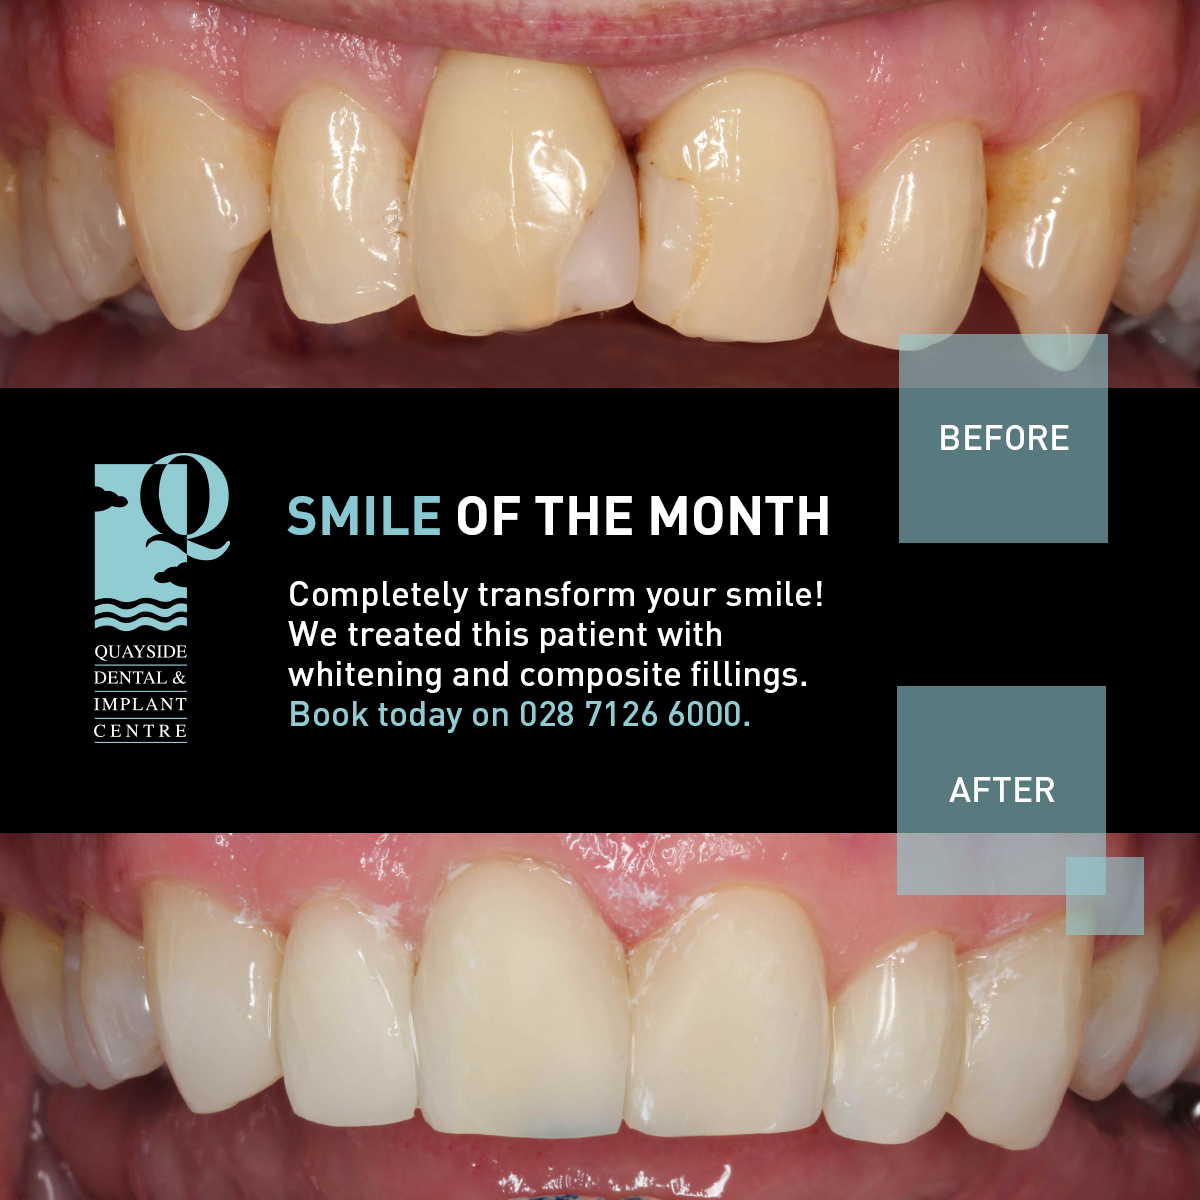 smile of the month Feb 2019